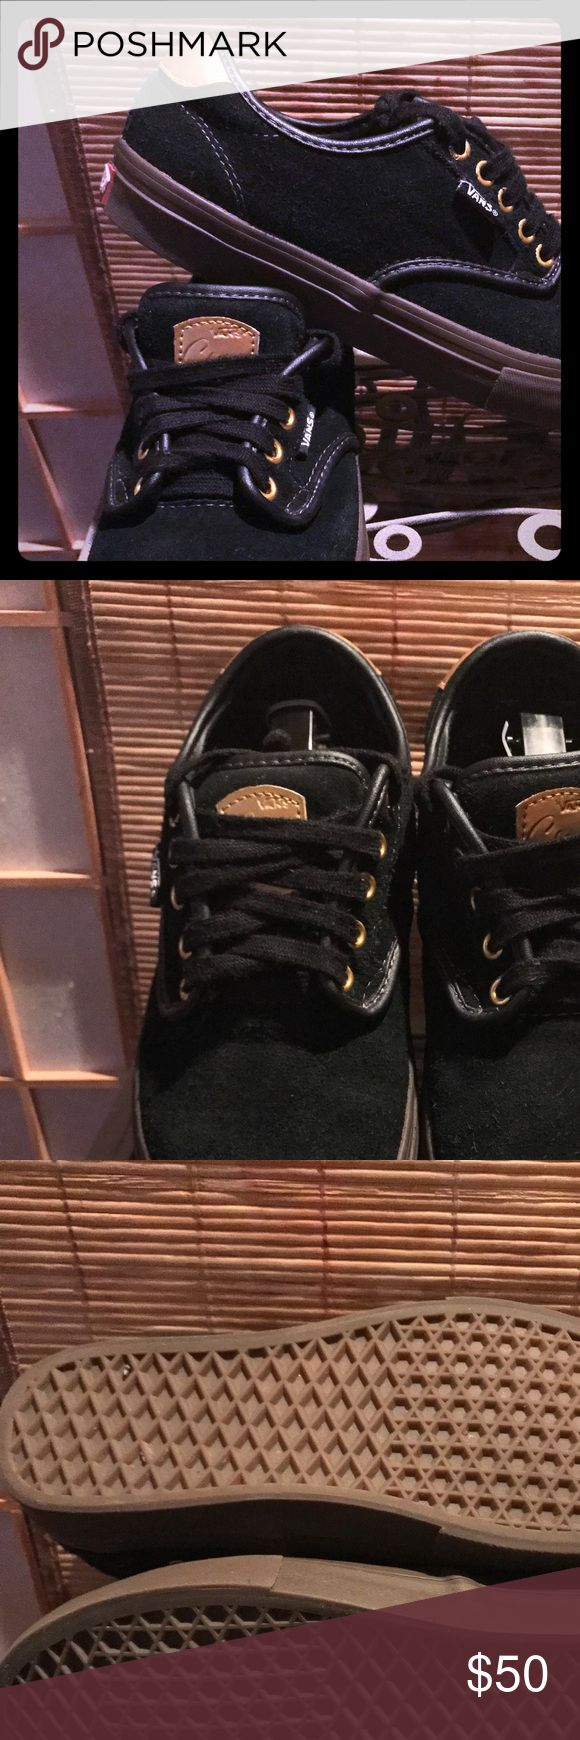 """🆒VANS Chima Ferguson Pro Shoes in Box🆒 These black/gum/gold VANS Chima shoes were bought too small for one son and then younger son missed the chance to wear them too 🙃. They have been worn once maybe twice. They are really NWOT and not """"used"""" and are in virtually new condition. Comes in VANS box and wrap. See pics 😉and send an offer!! Vans Shoes Sneakers"""